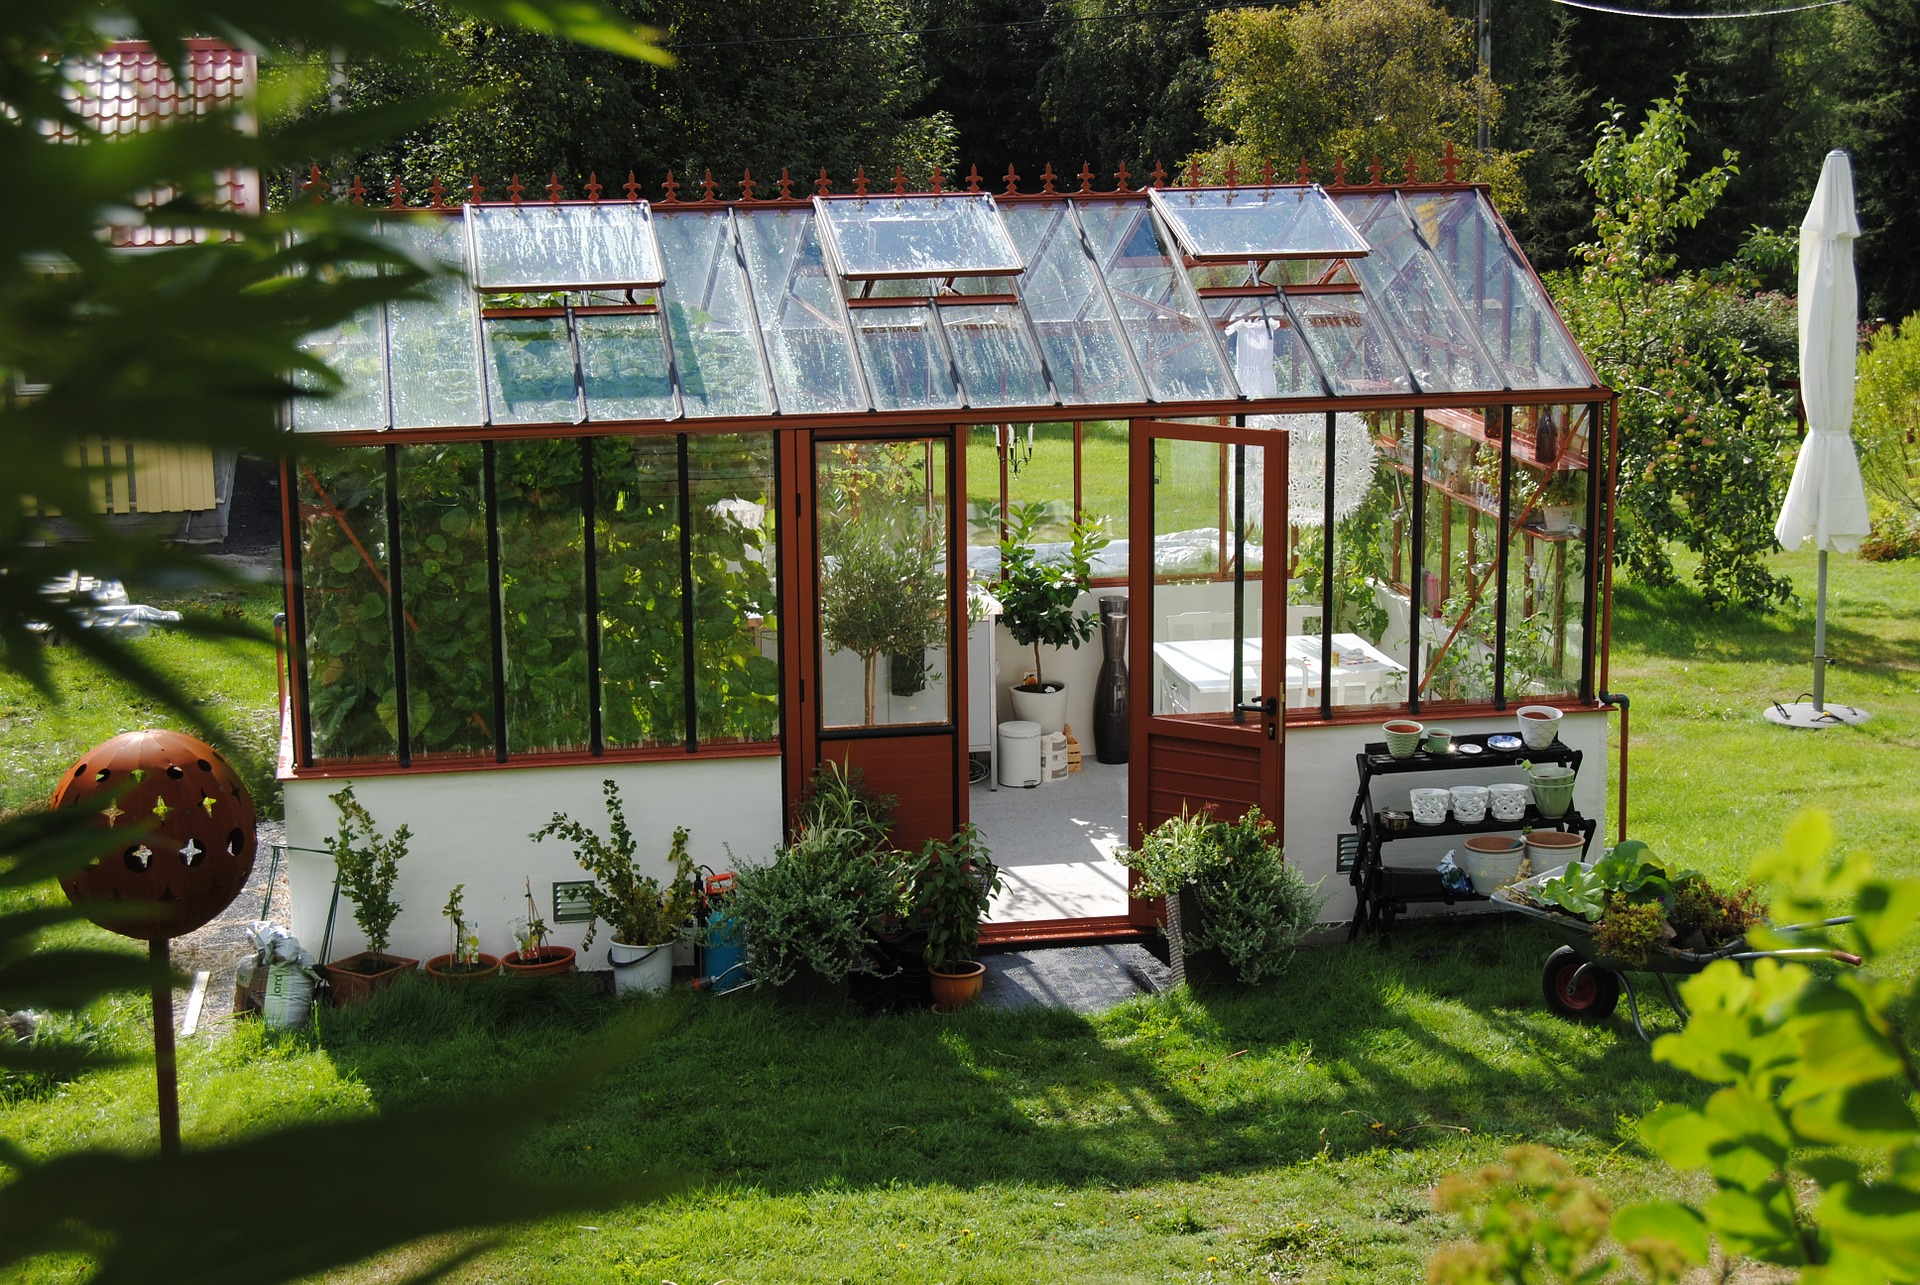 How to Build a Homemade Greenhouse with Our Easy DIY Tutorial